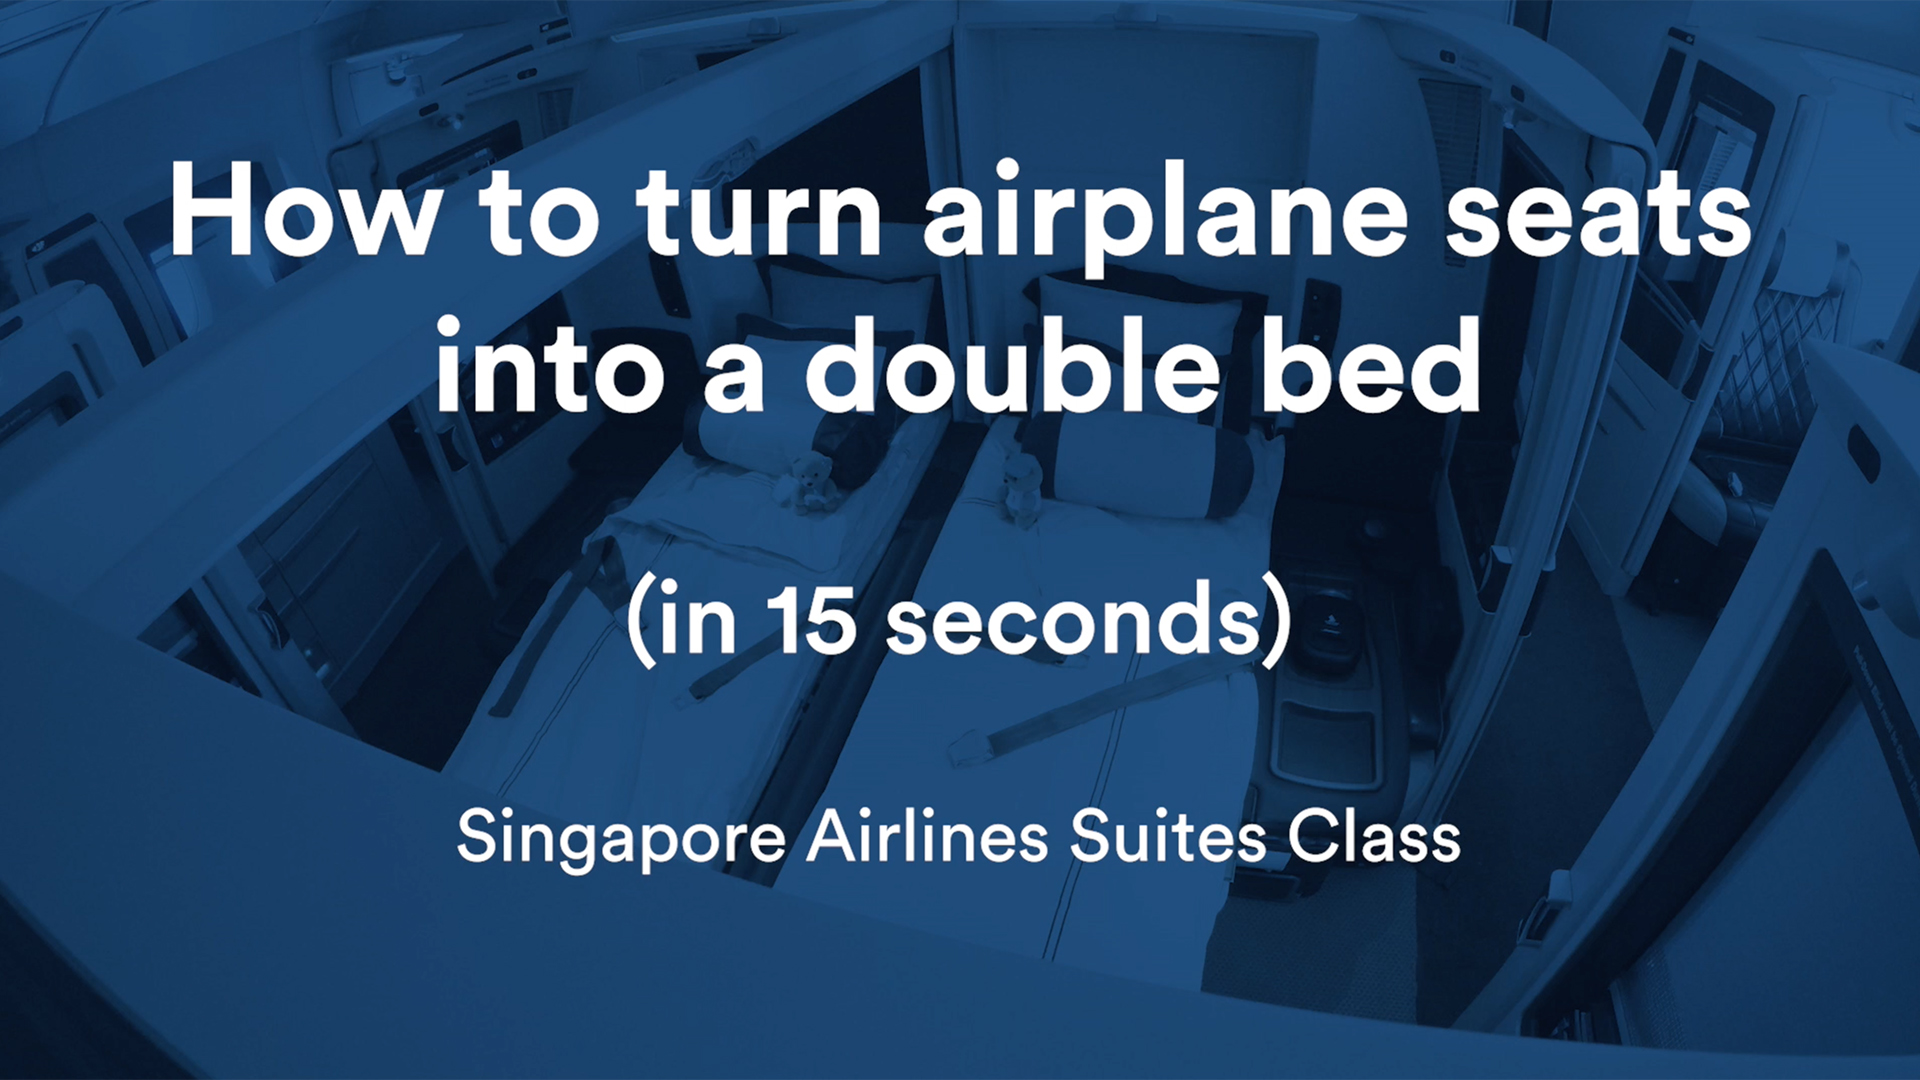 How to Turn Airplane Seats Into a Double Bed